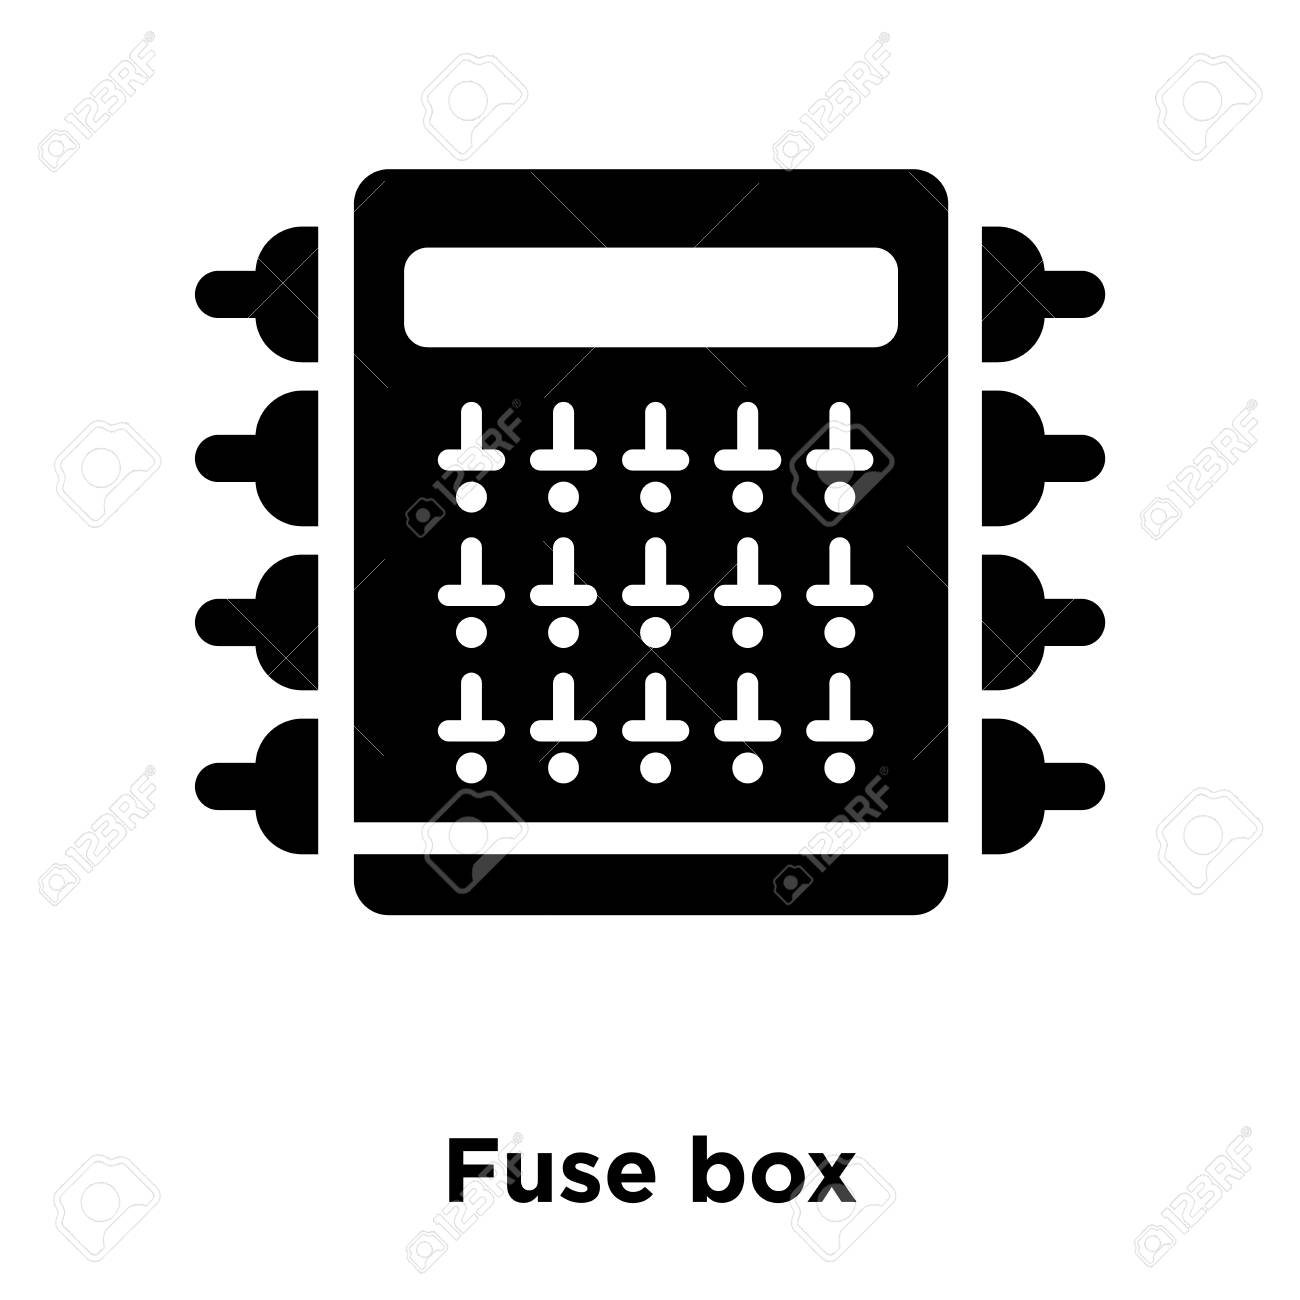 hight resolution of fuse box icon wiring diagram yer fuse box icon png